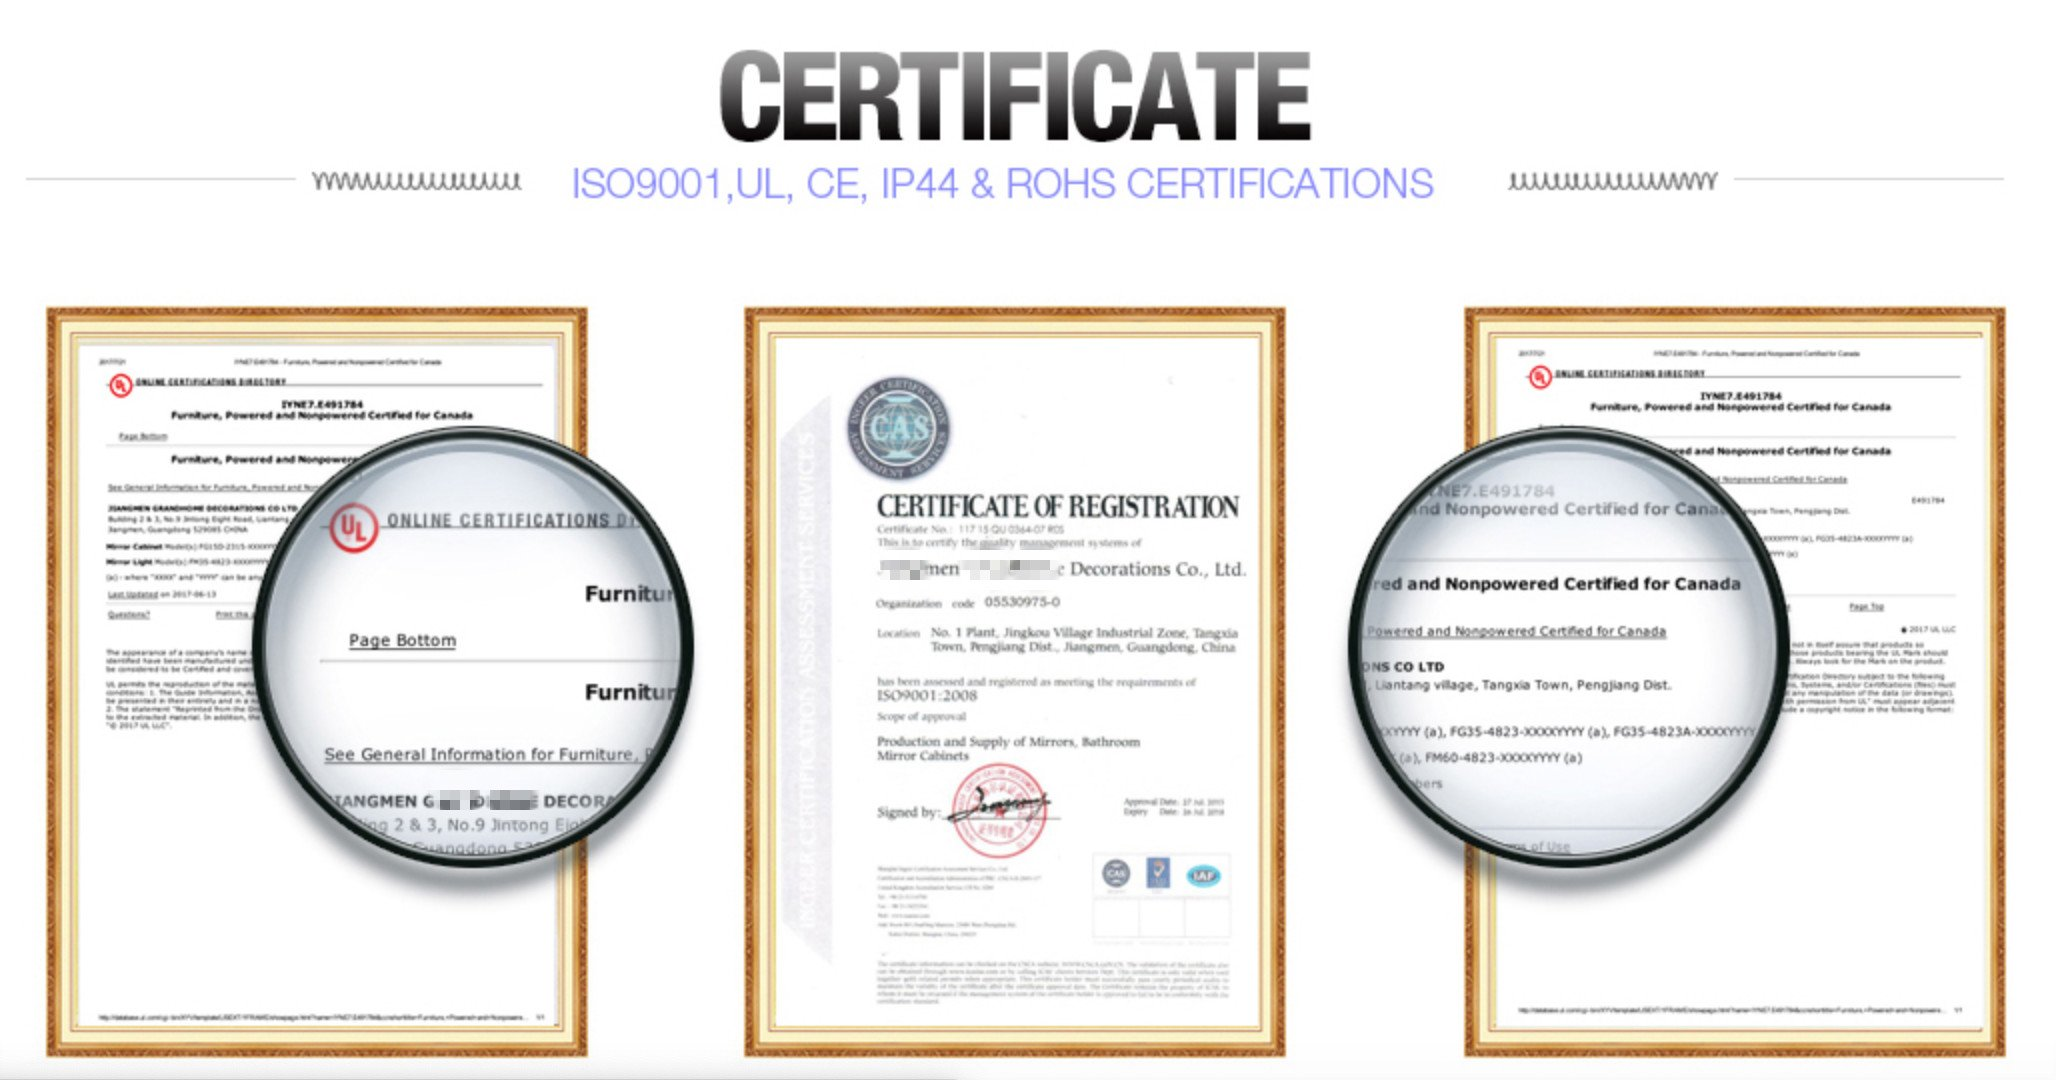 Framed Mirror Manufacturers CERTIFICATIONS